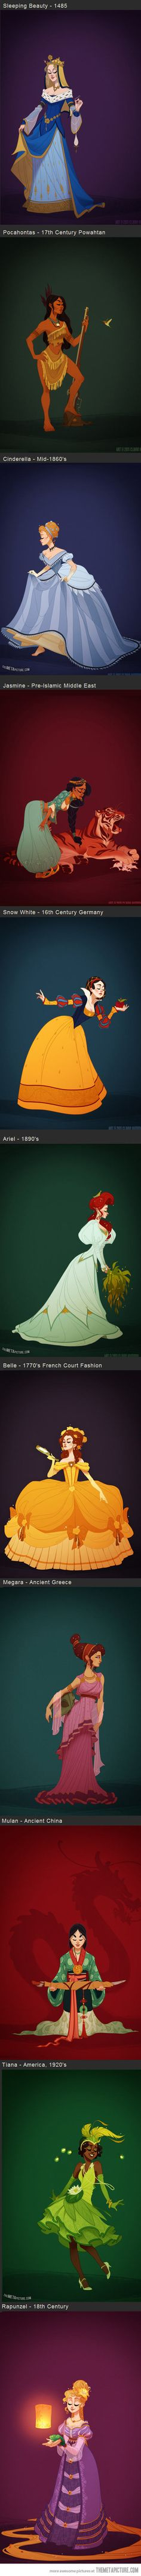 Disney Princesses in accurate period costume. I love all except Rapunzel... Why does she look so dang English Regency...?